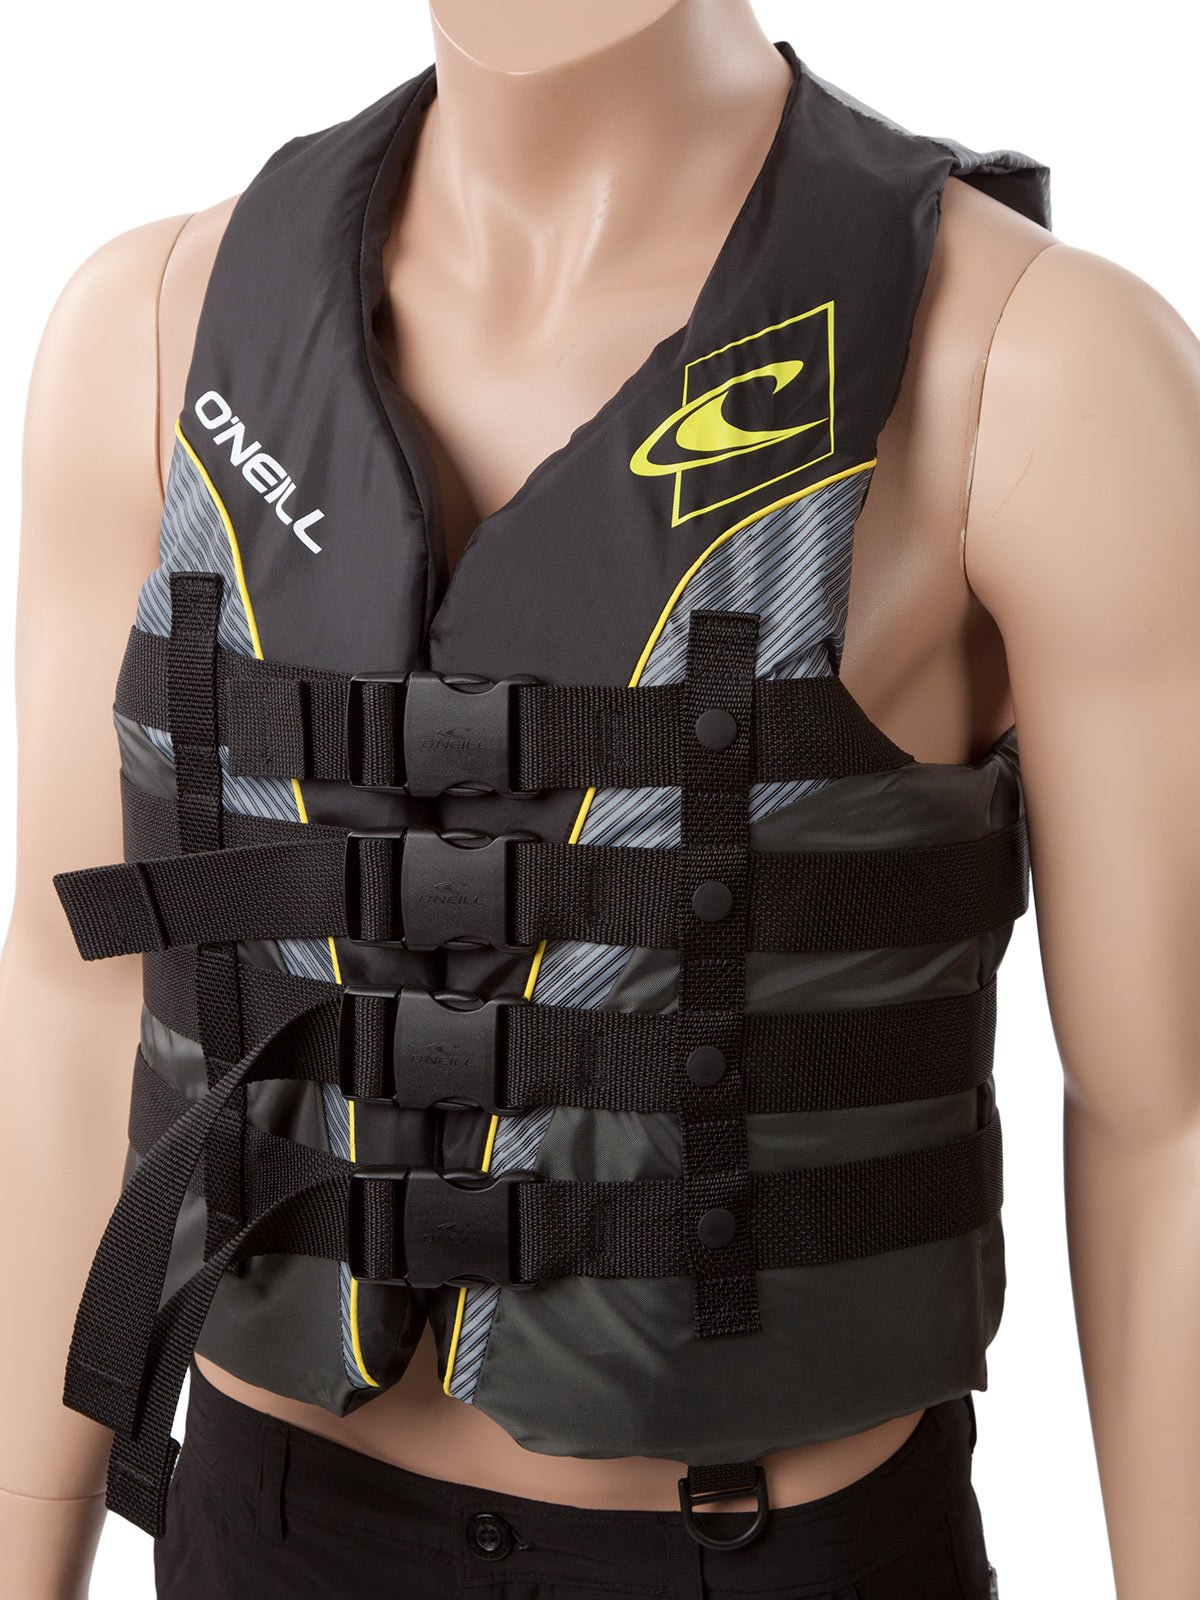 O'Neill Mens Superlite USCG Life Vest M Black/Graphite/Smoke/Yellow (4723) by O'Neill (Image #4)